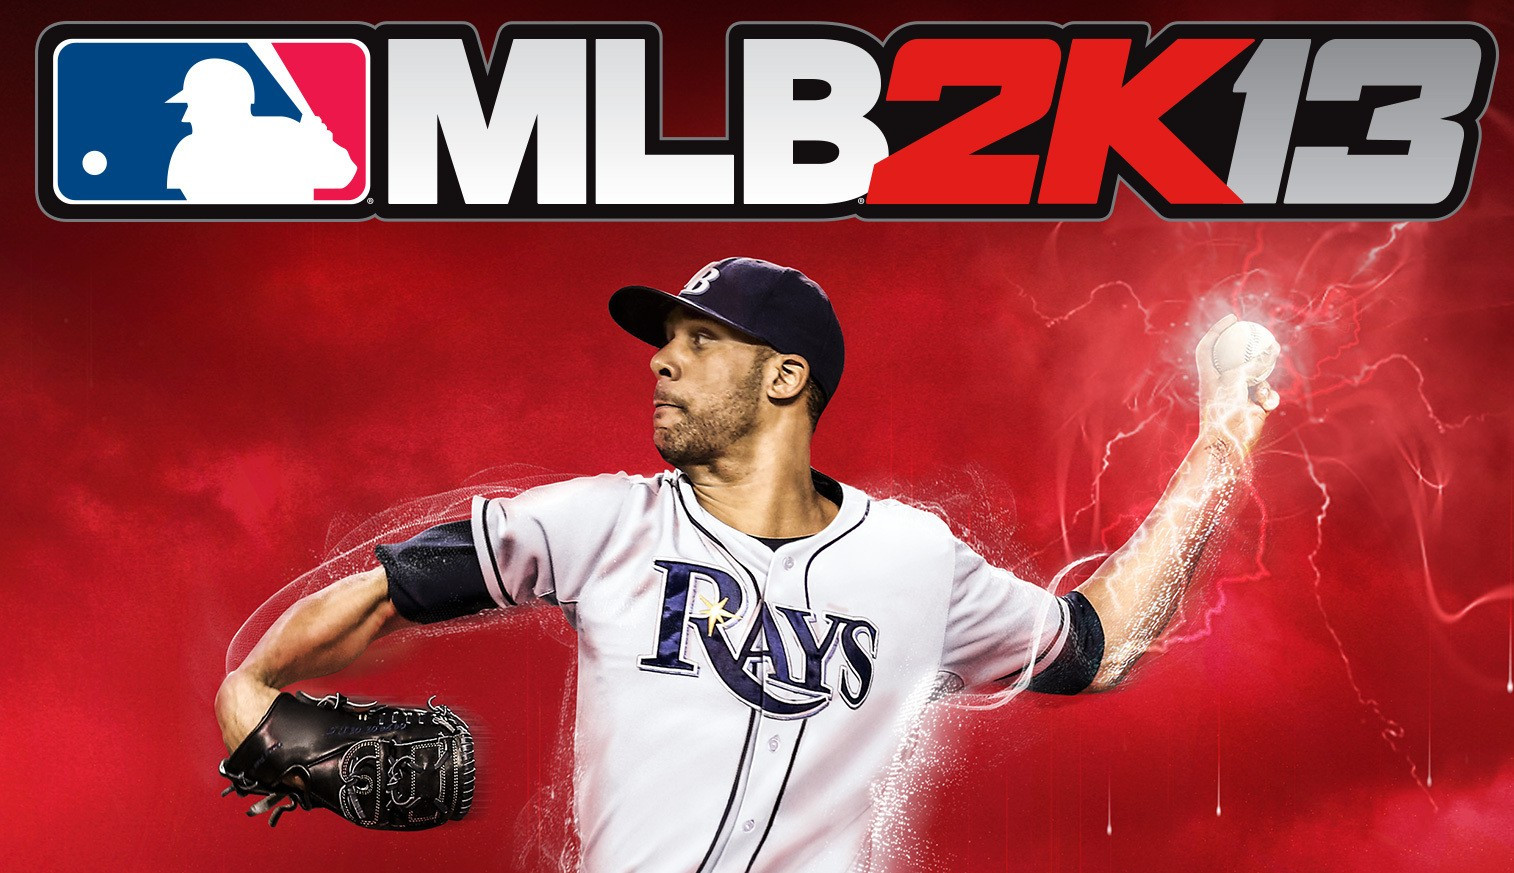 'MLB 2K13' announced by 2K Sports, releases in March